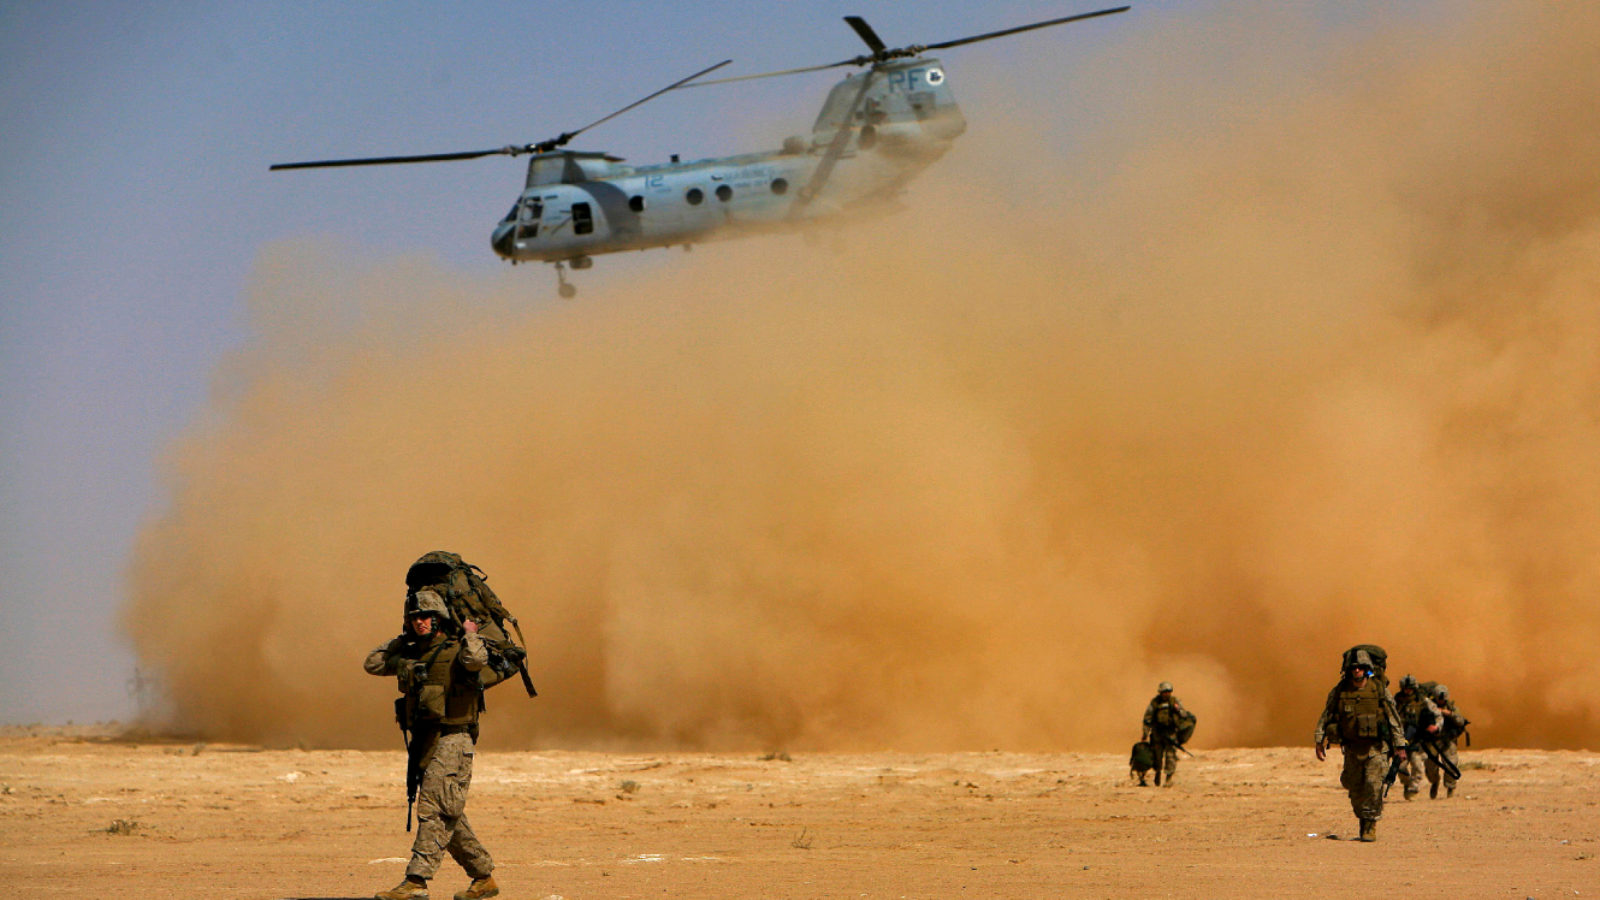 Soldiers walk in a desert underneath a departing Chinook helicopter.